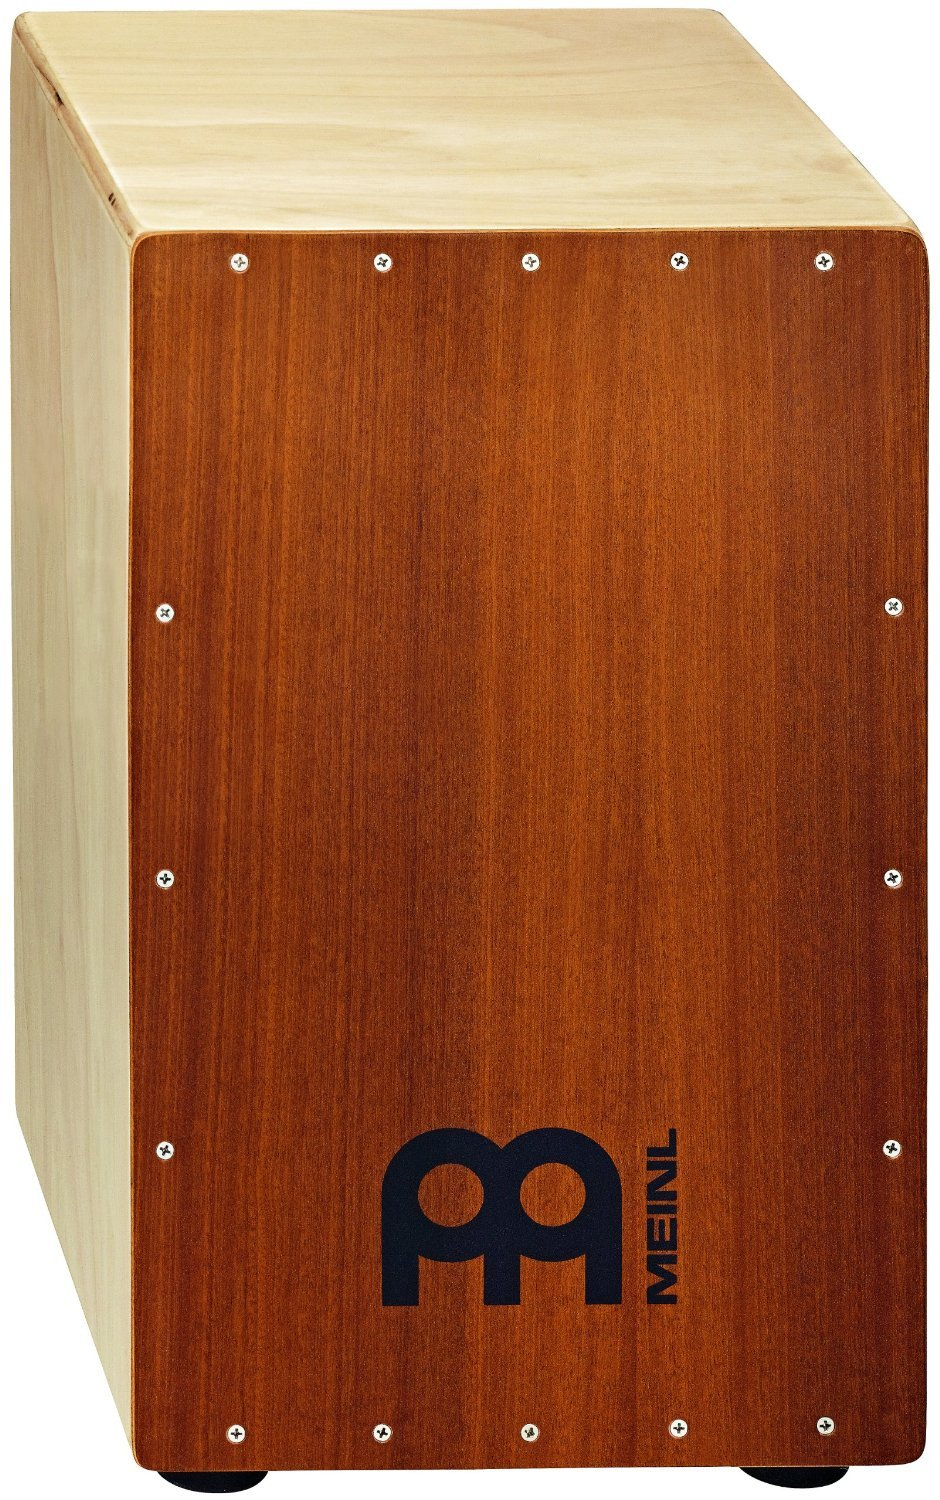 Meinl Percussion HCAJ1MH-M Headliner Series Mahogany Wood String Cajon, Medium Size (VIDEO)